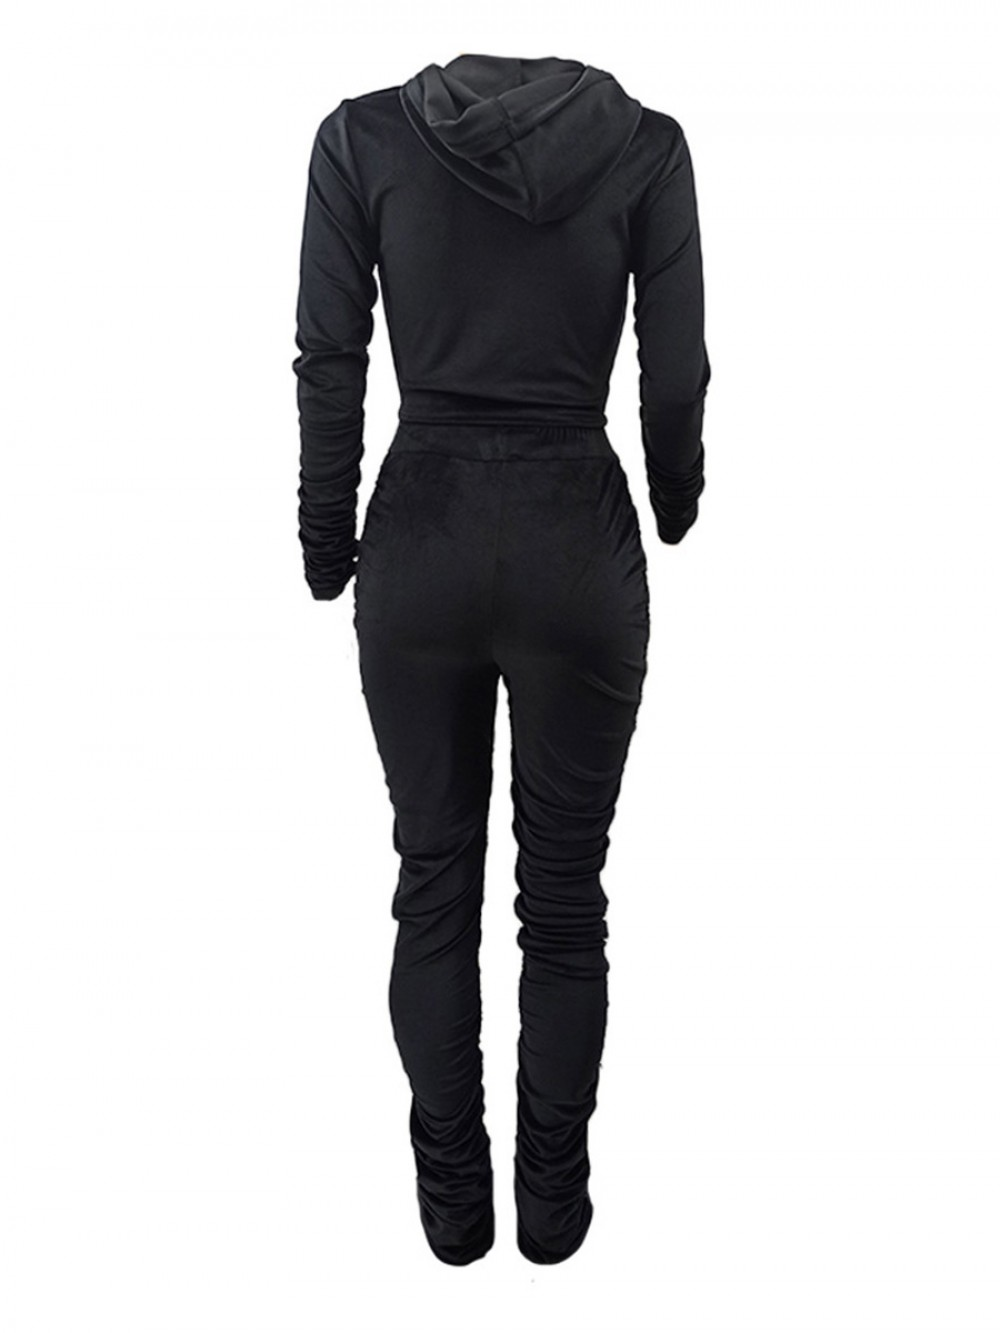 Black Golden Velvet Two Piece Outfit With Zip Fashion Essential